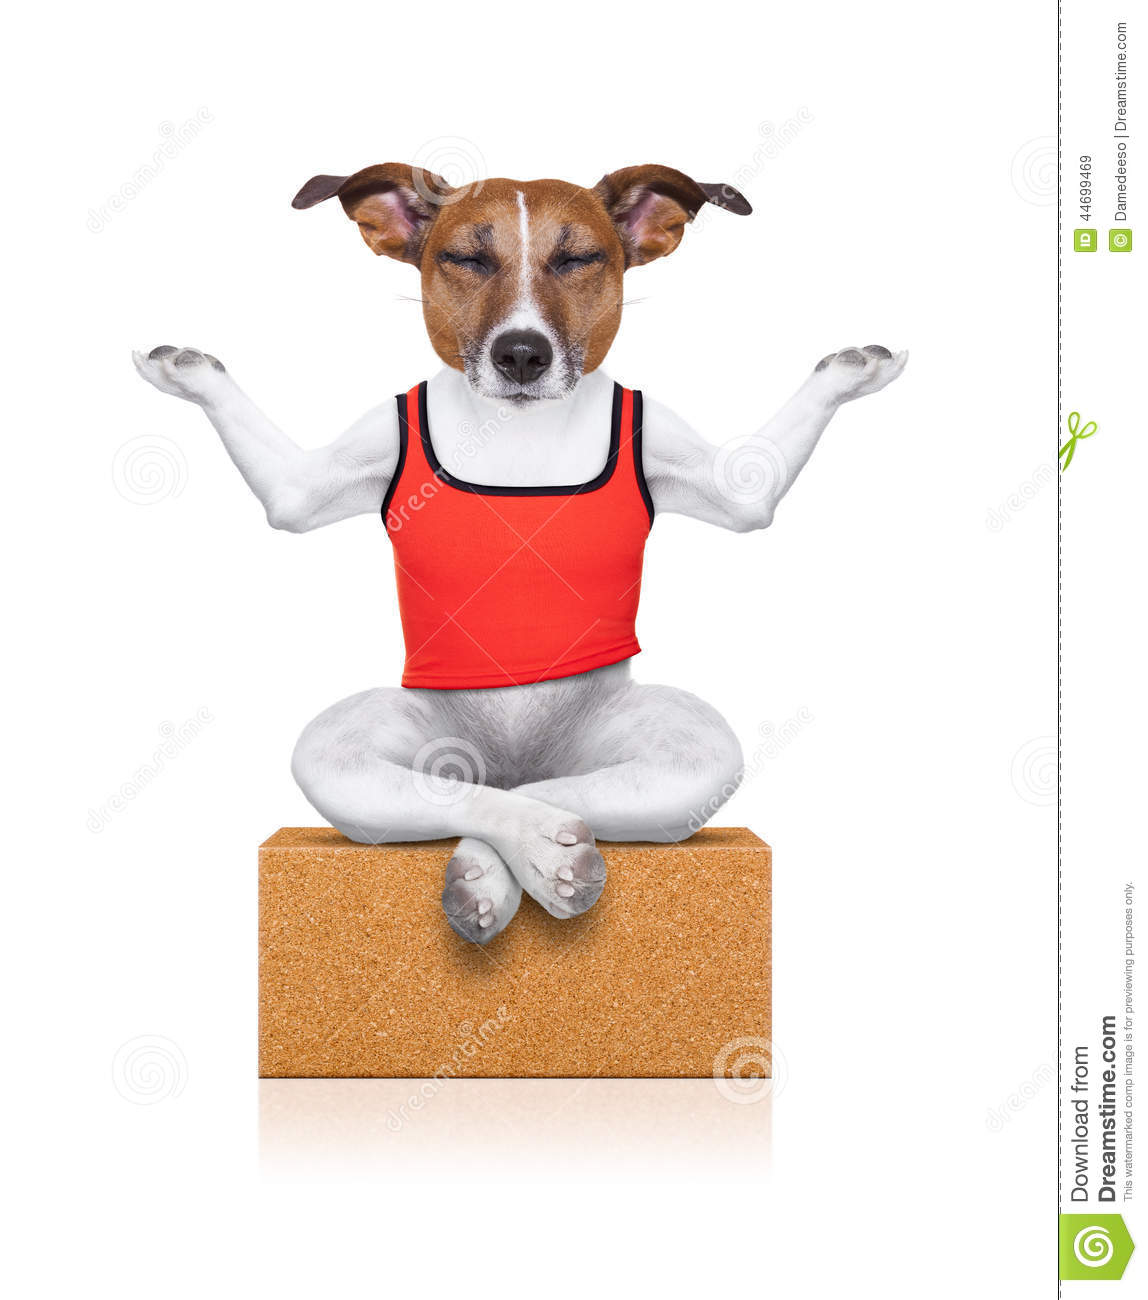 Dog sitting relaxed with closed eyes on a yoga brick isolated on